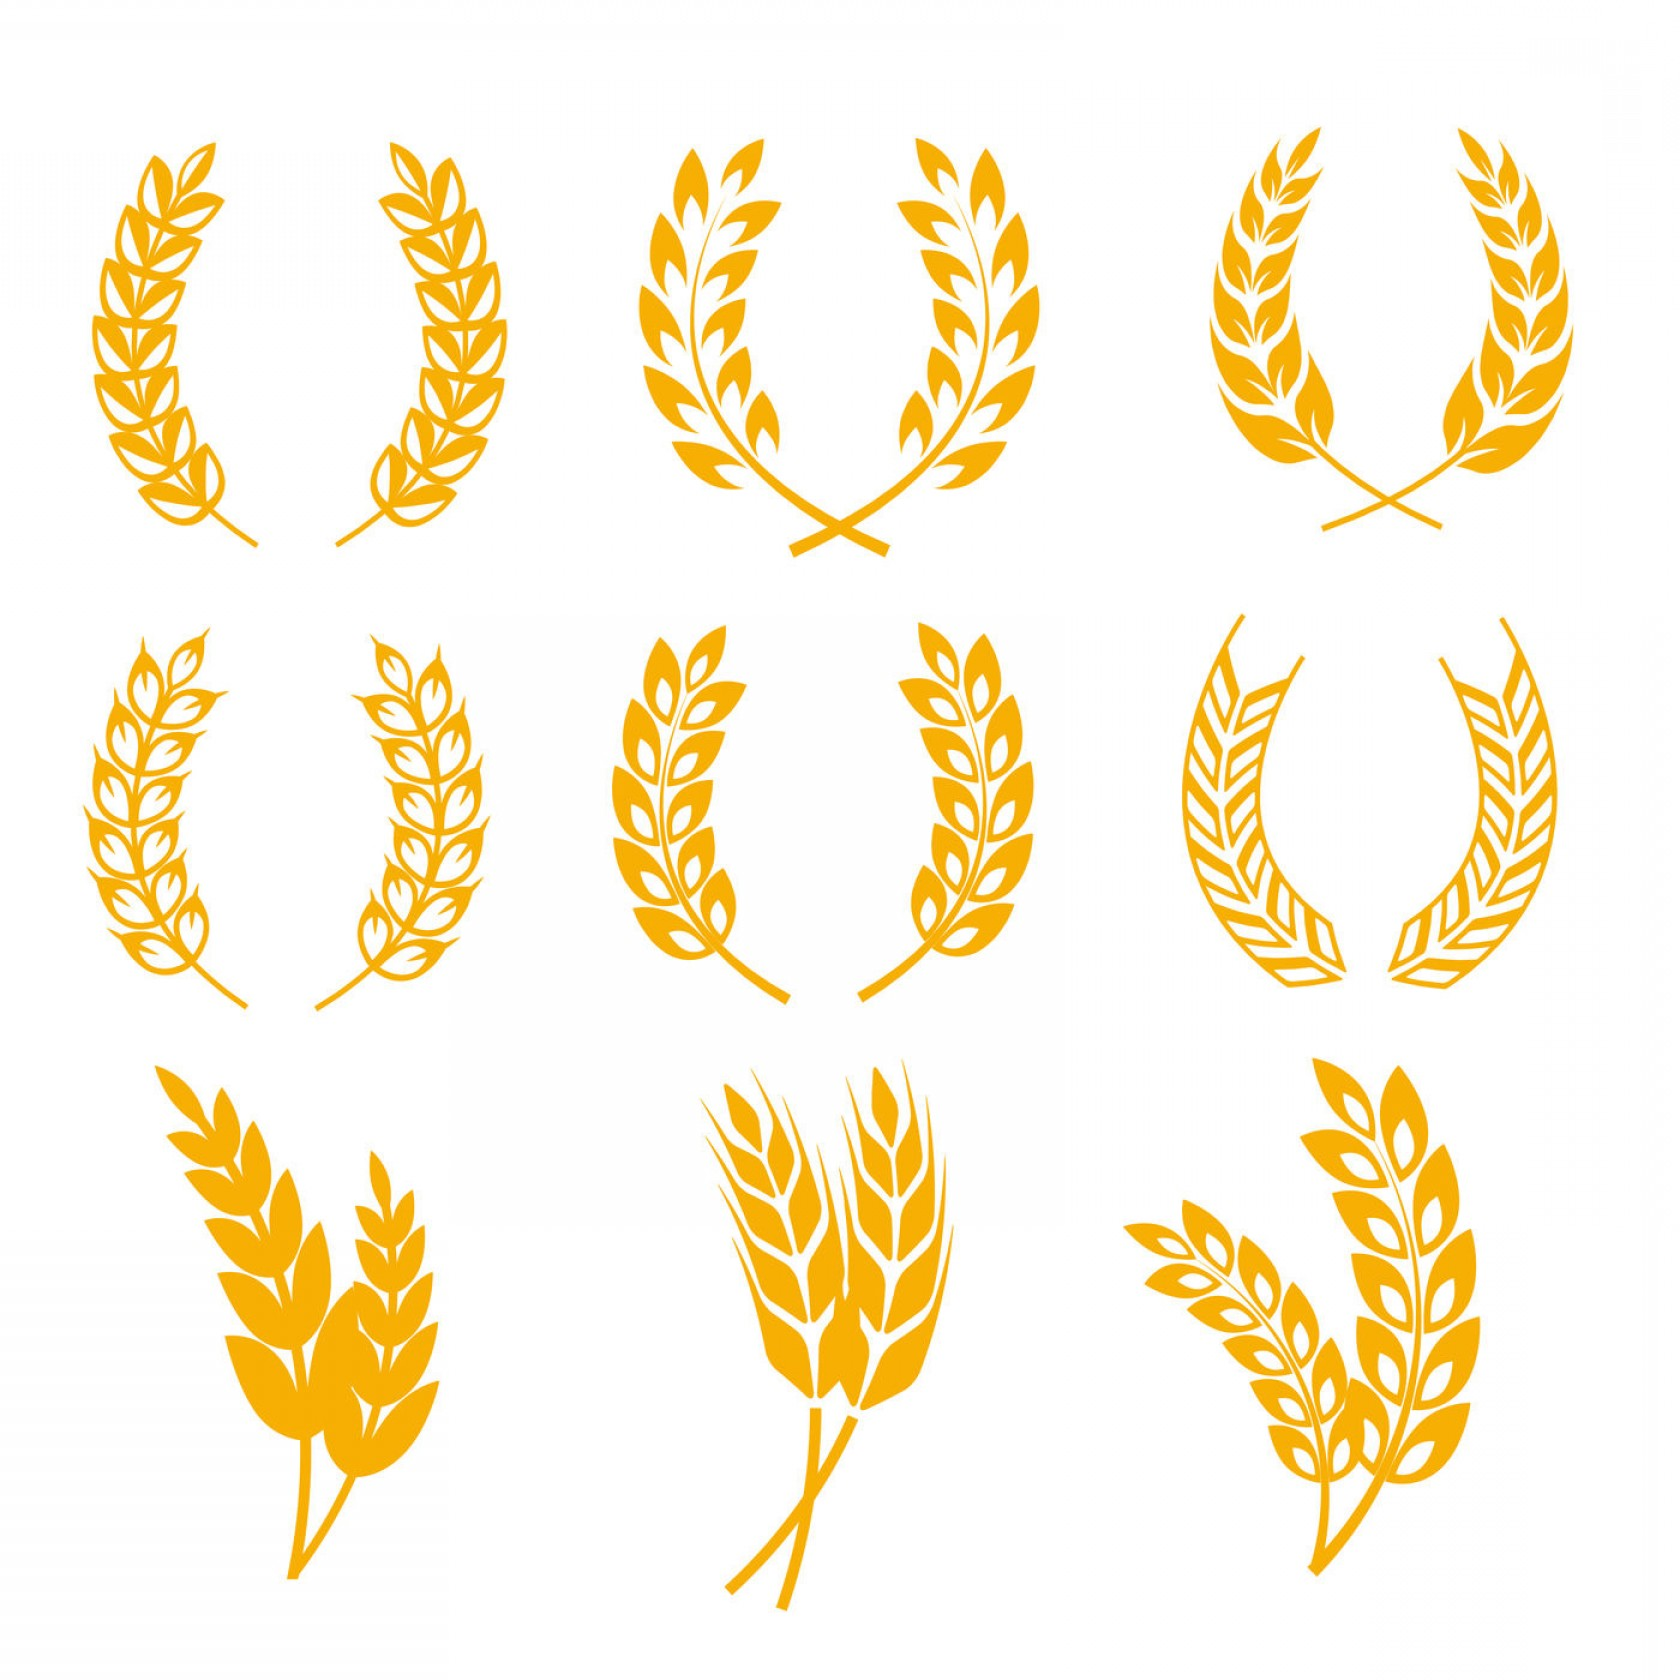 Wheat Flourishes Vector: Rye Wheat Ears Wreaths Vector Elements For Bread And Beer Labels Logo